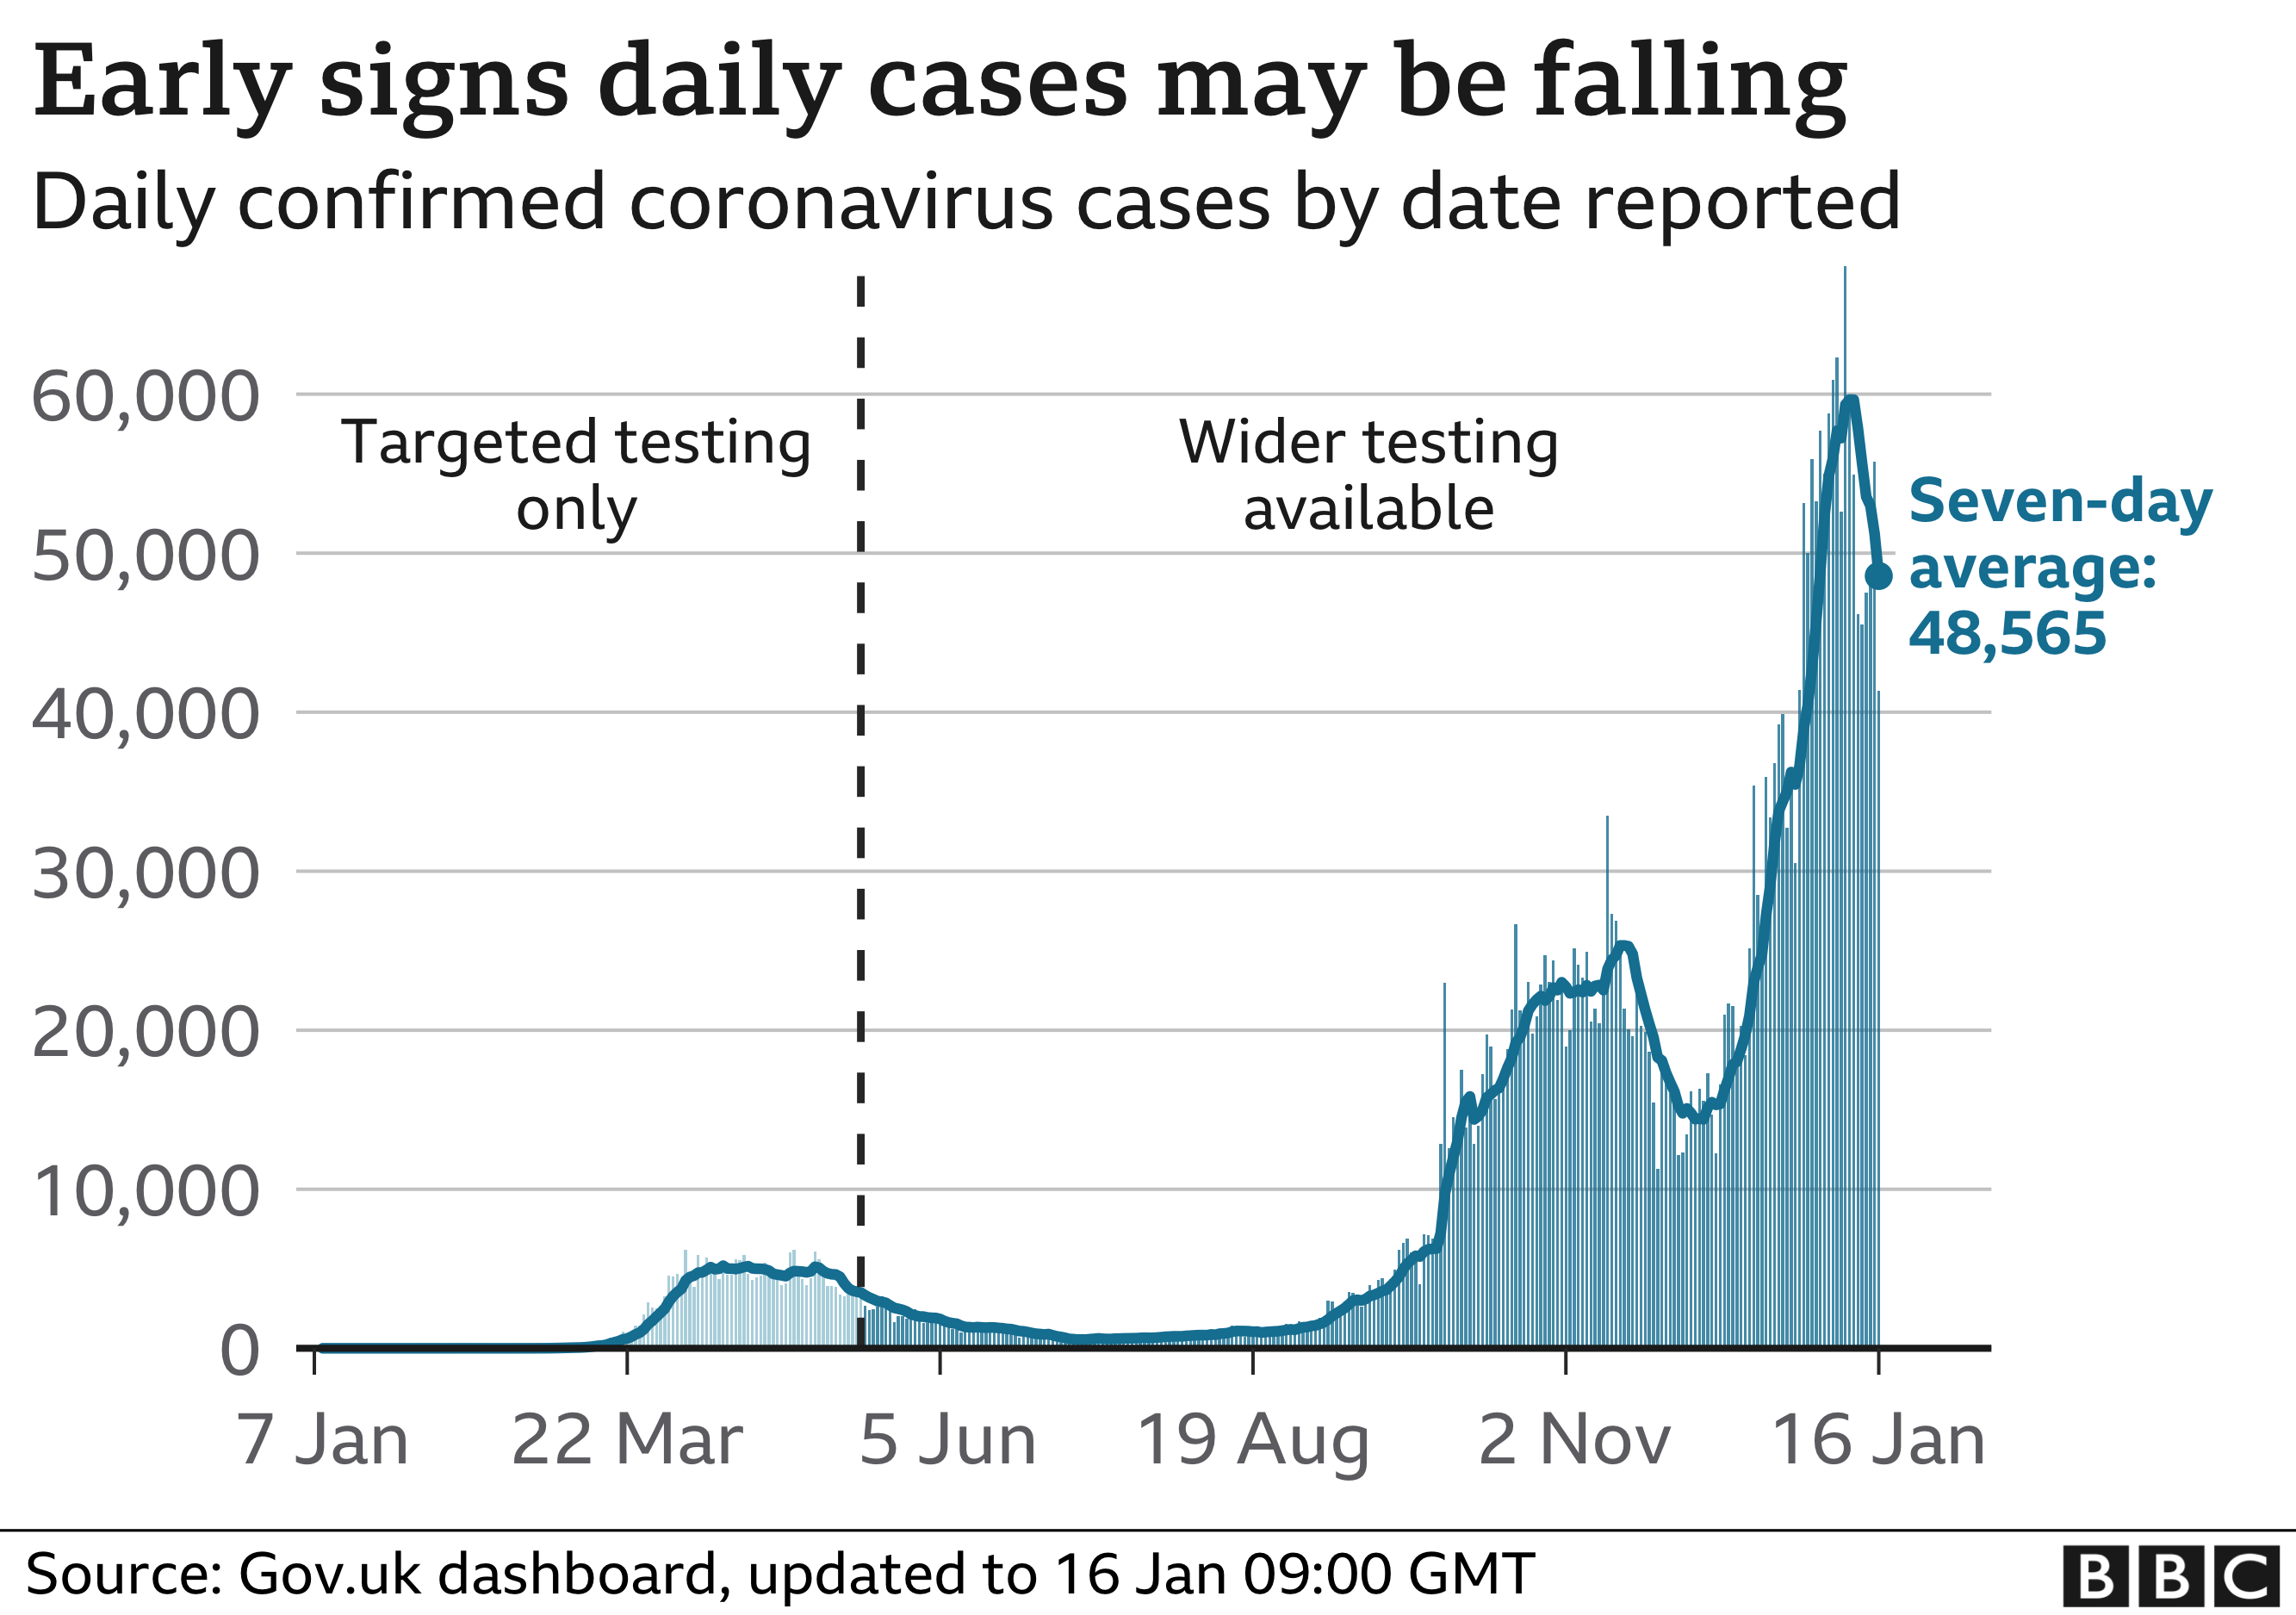 Chart showing the number of daily cases in the UK